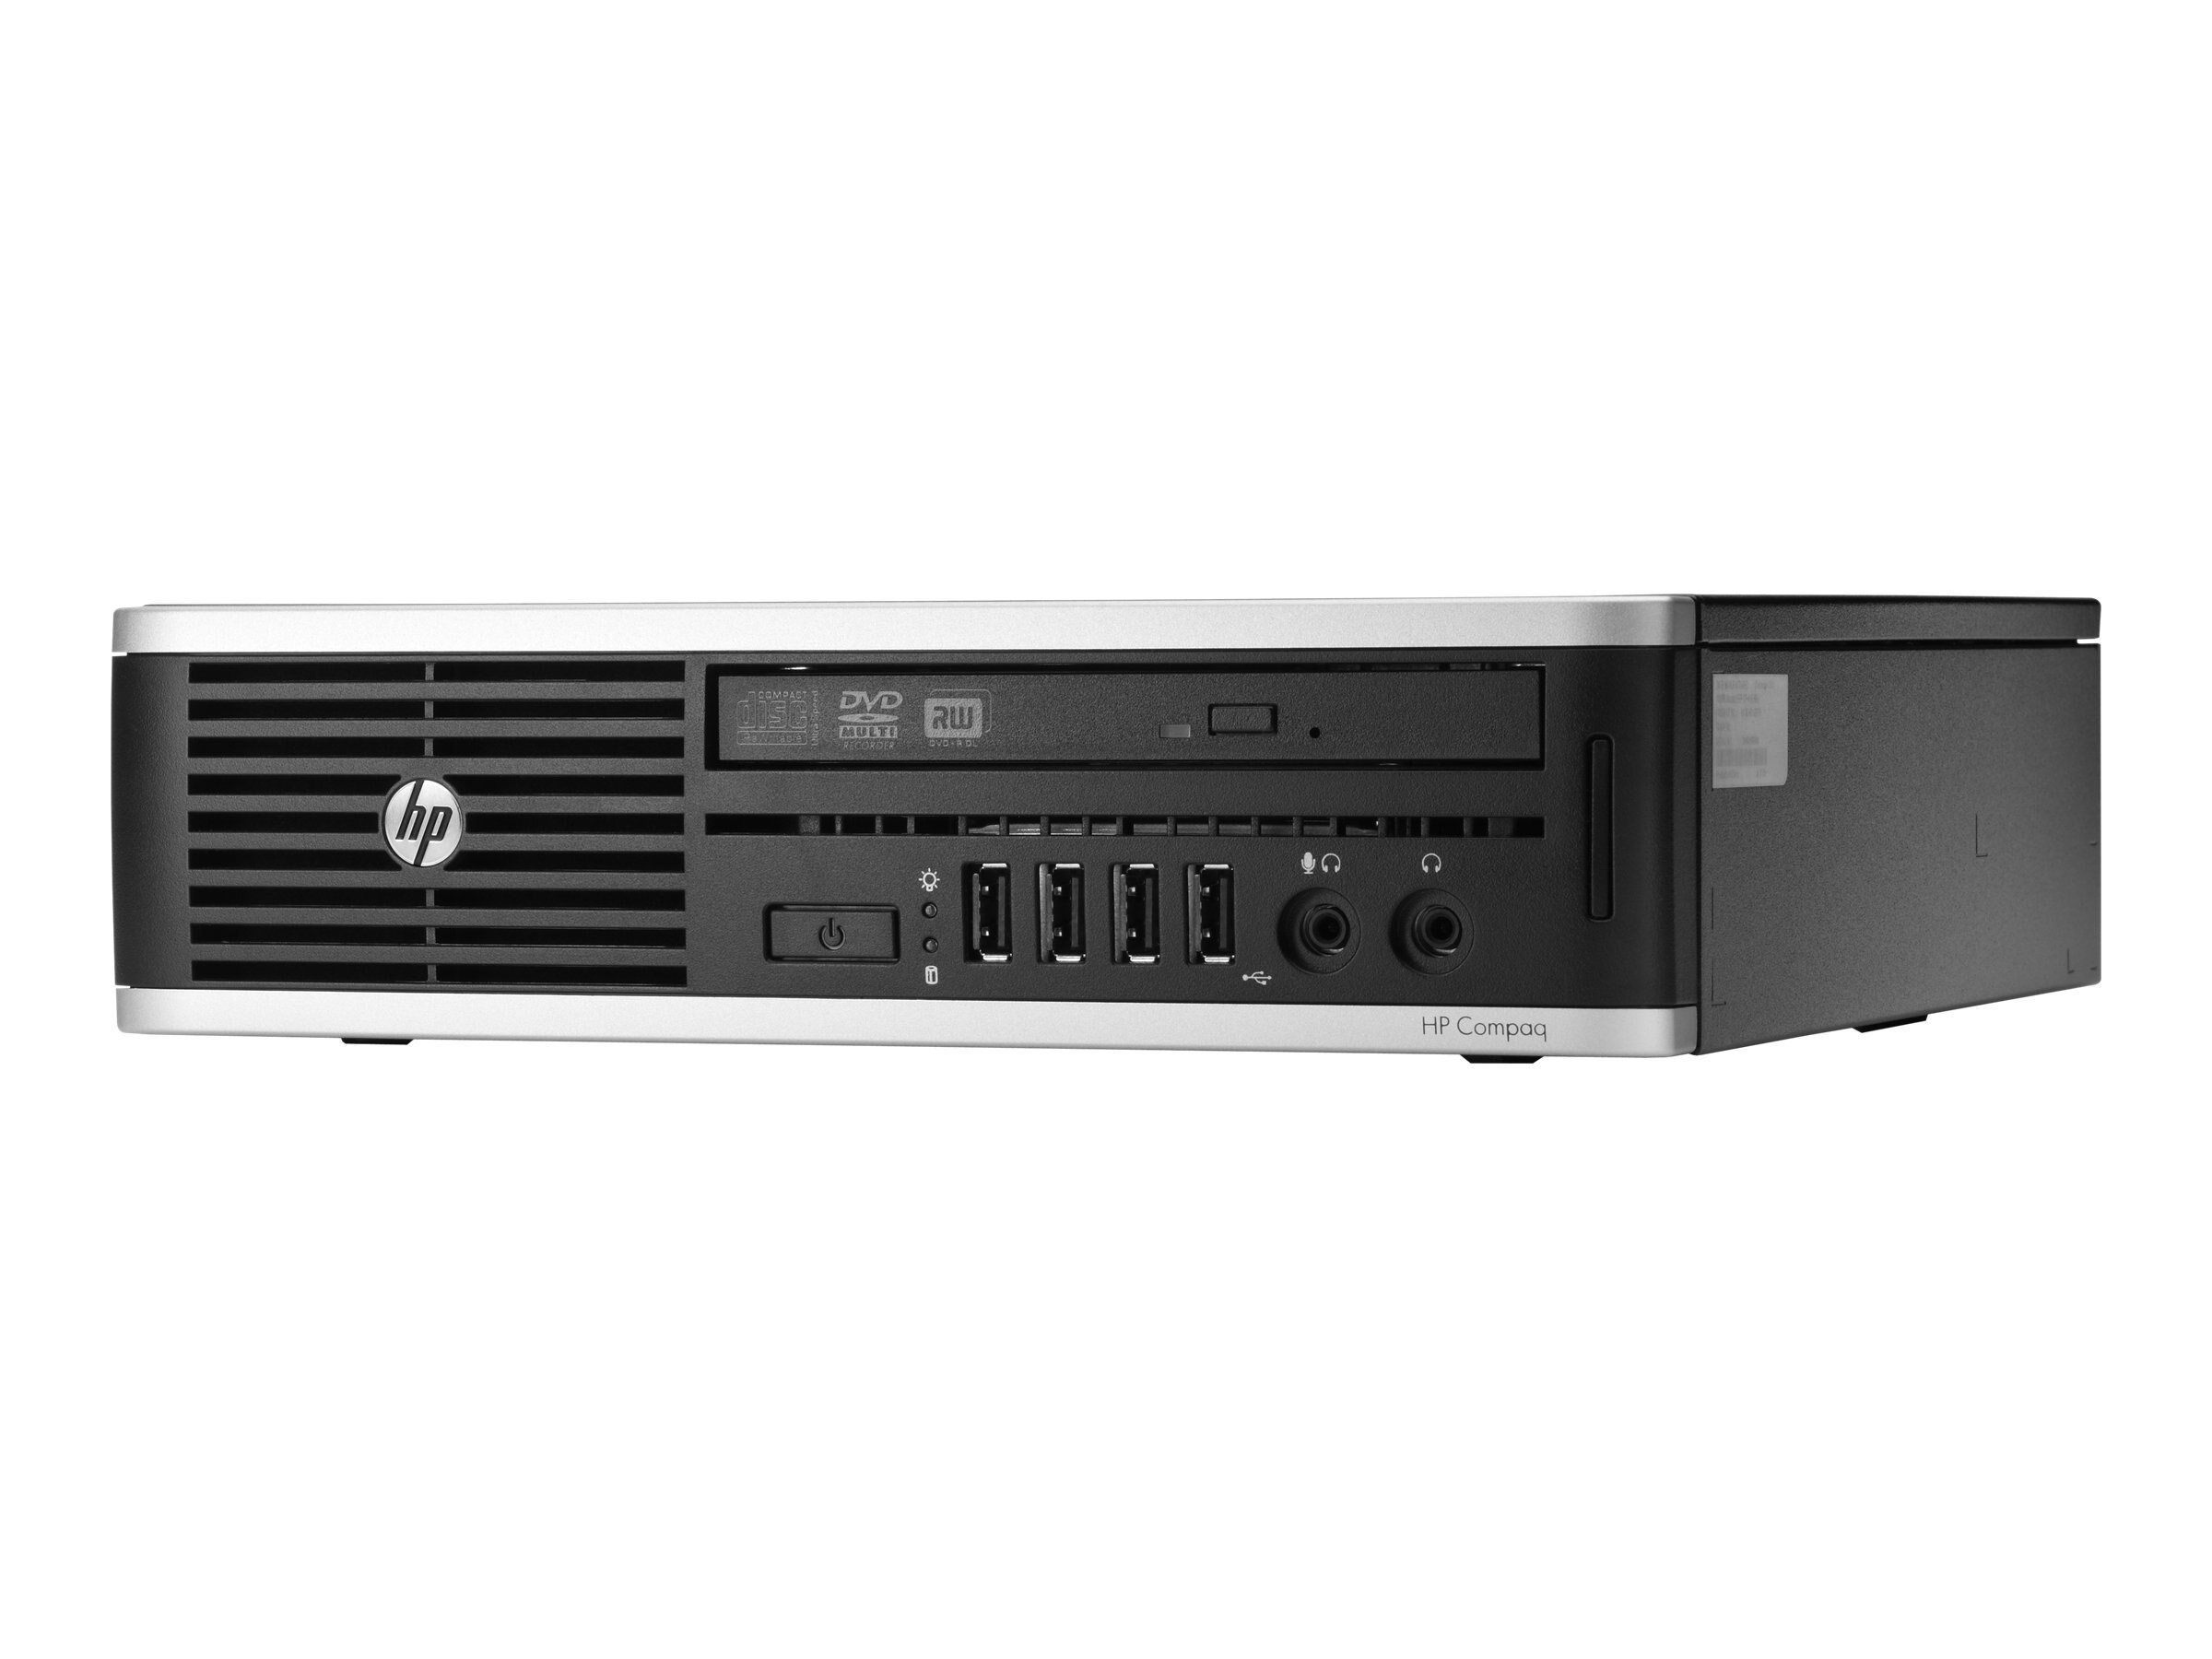 HP SignagePlayer mp8200 Core i5-2400s 2.5GHz 2GB 160GB abgn GNIC WES7, XZ952UA#ABA